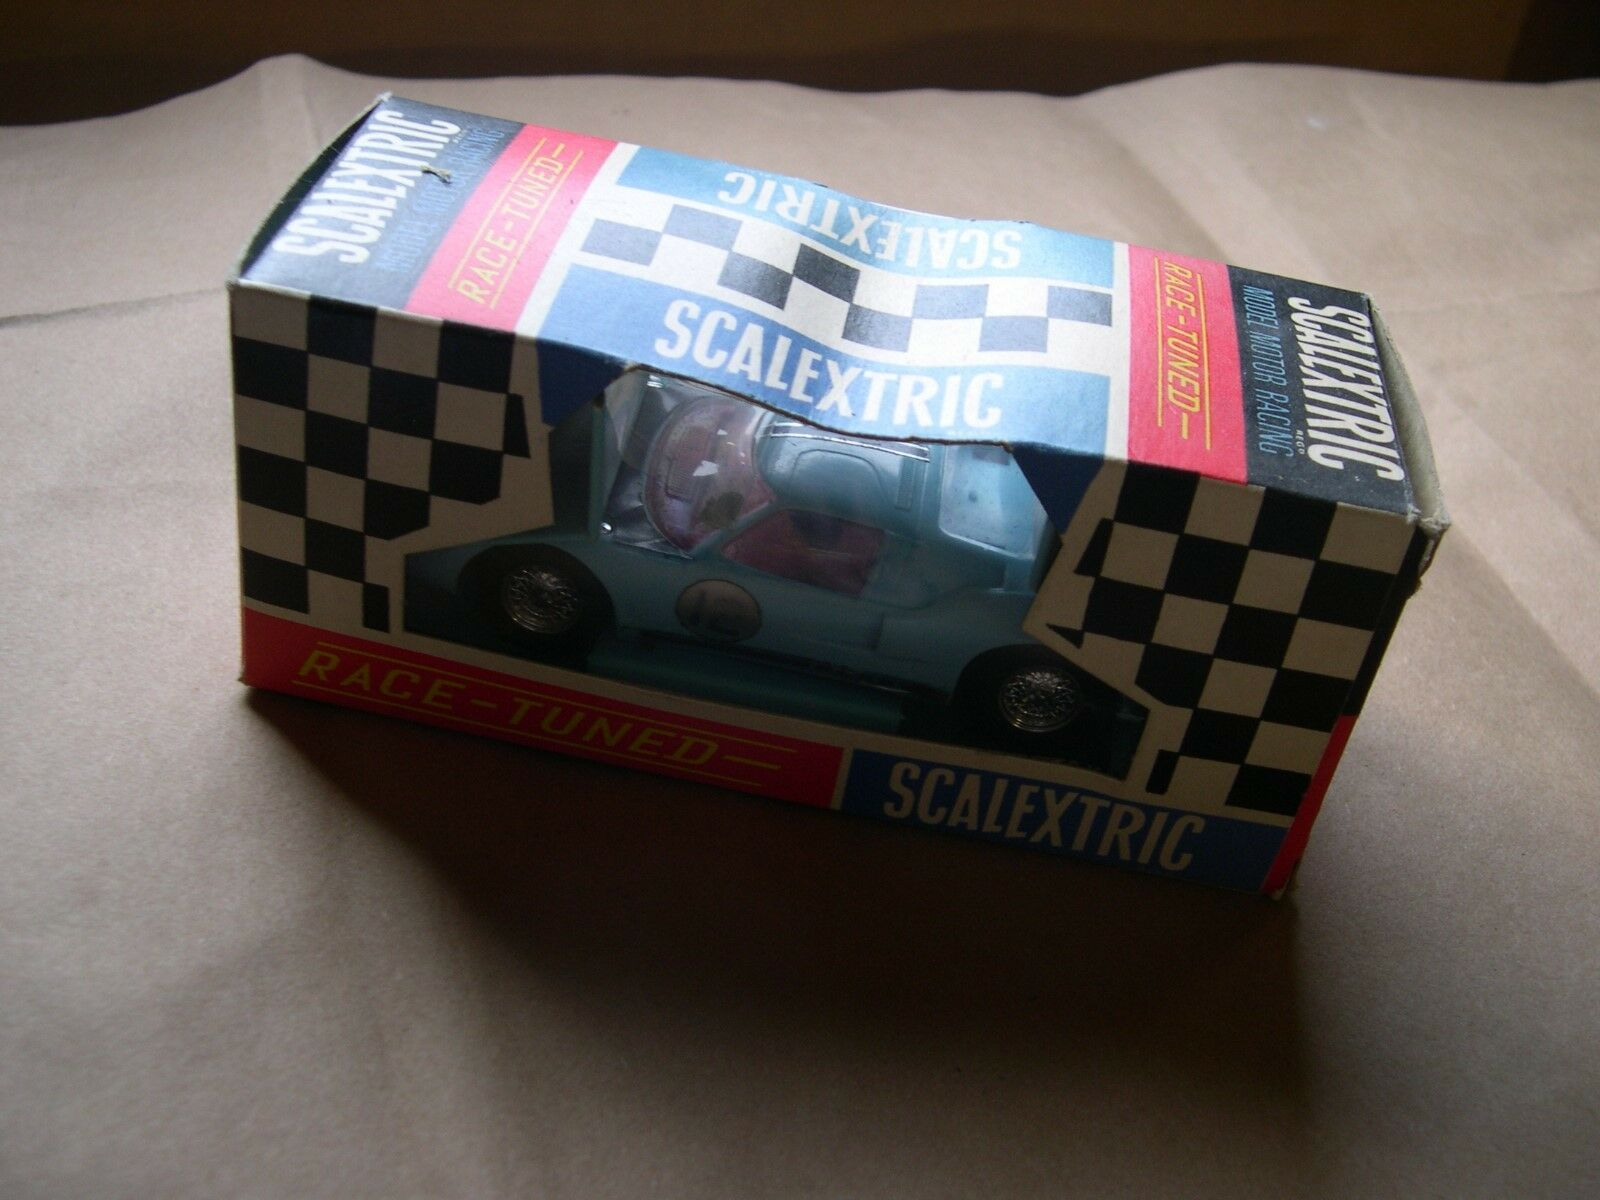 Scalextric Race Tuned Racing Car